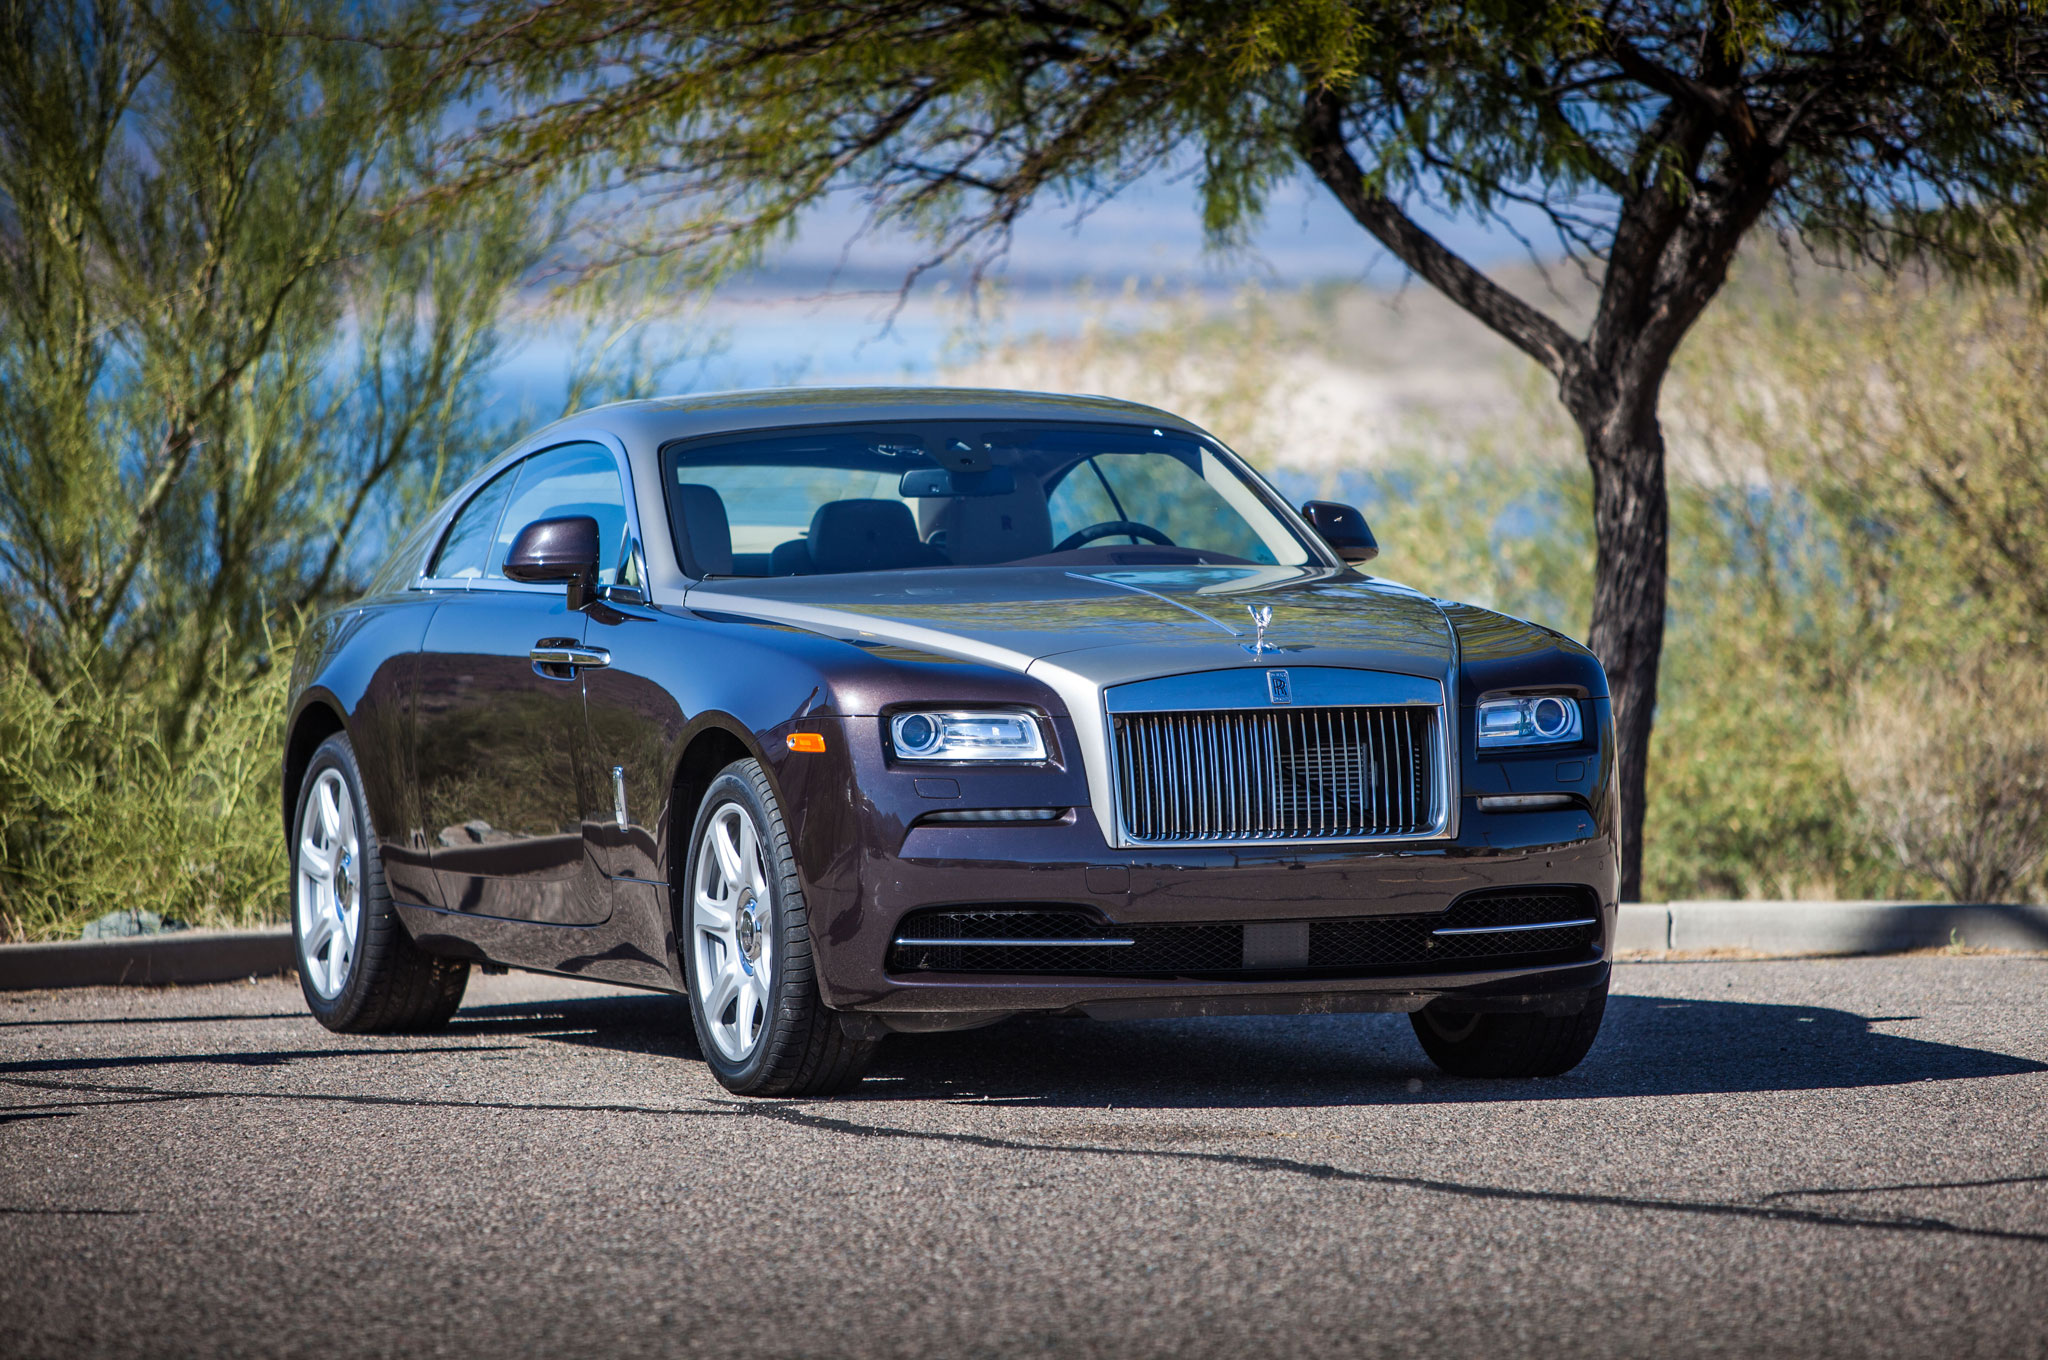 Factory Tour Inside the Rolls Royce Motor Car Facility Motor Trend